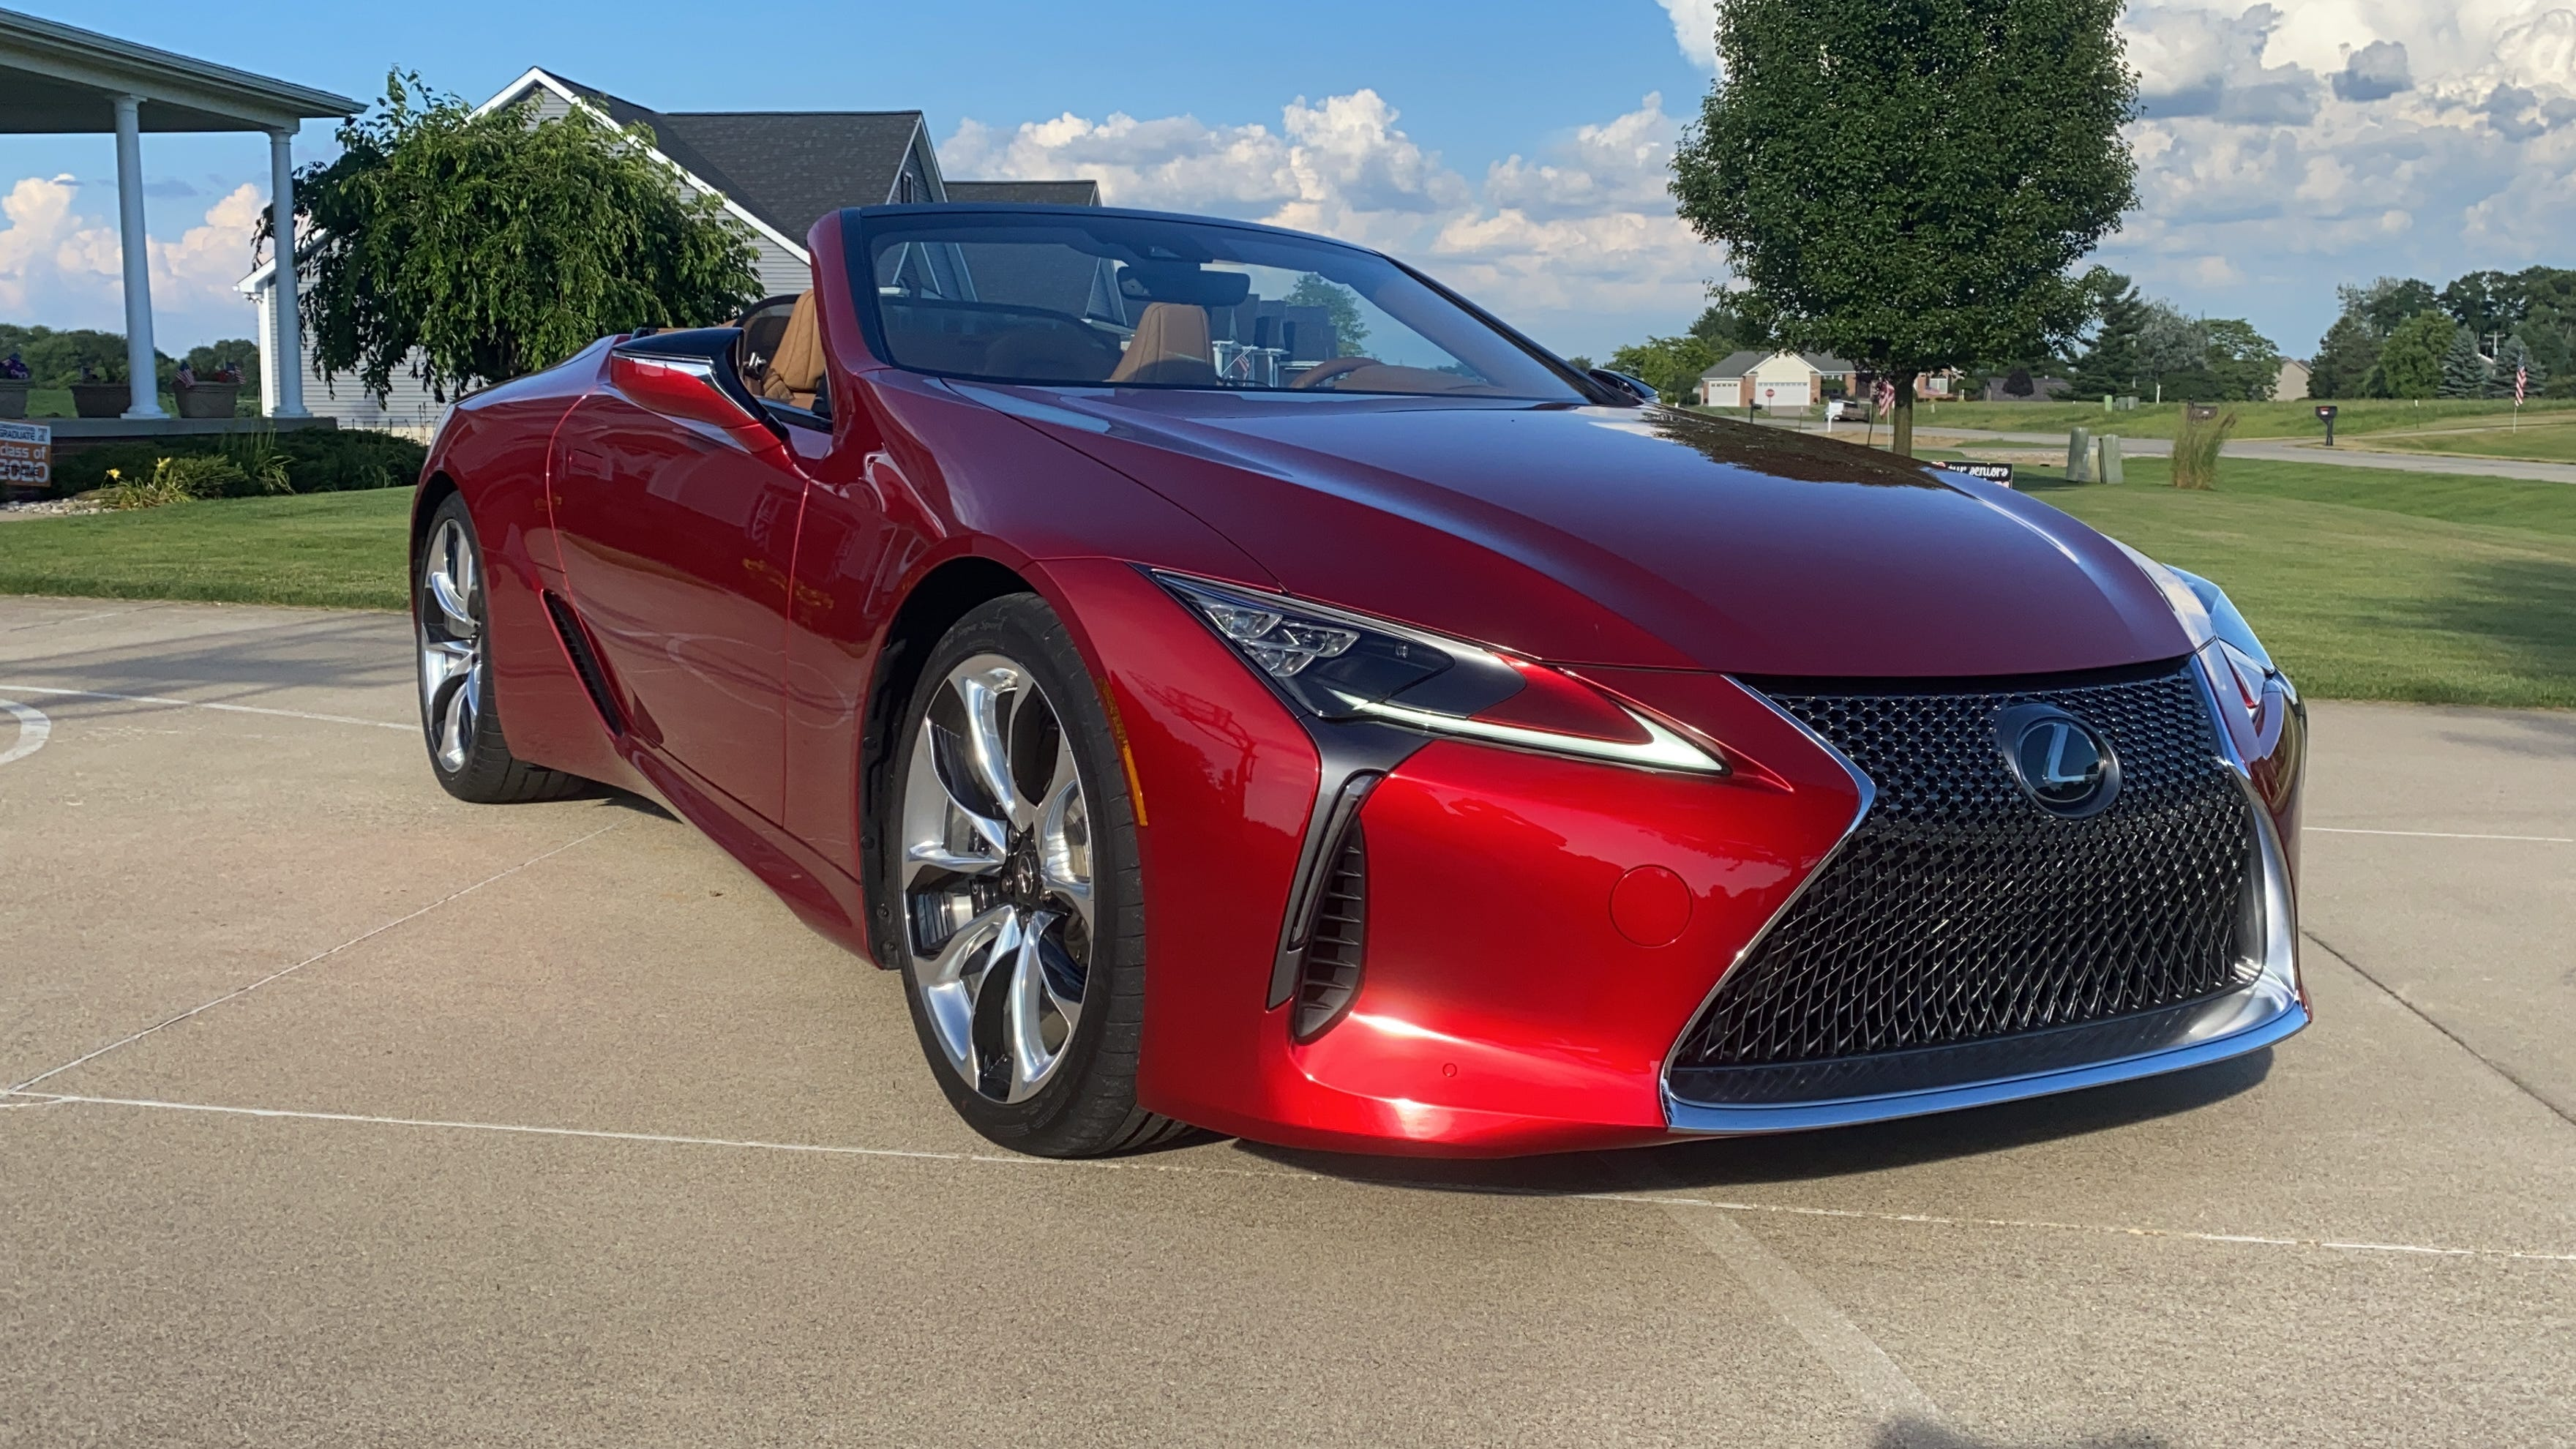 2021 Lexus Lc 500 Convertible Takes The Brand S Style To New Heights